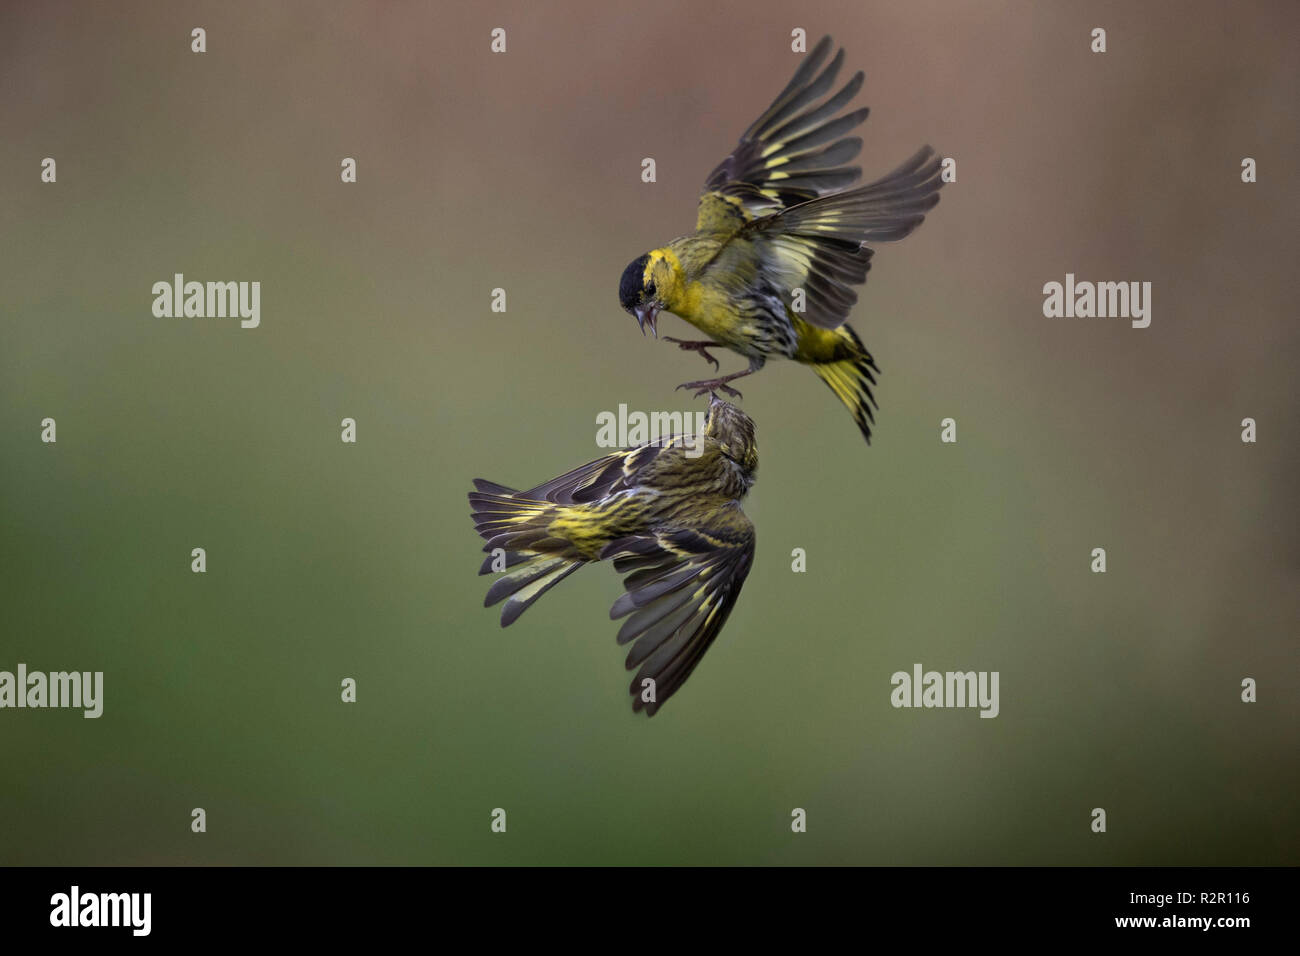 siskin flapping fight - Stock Image